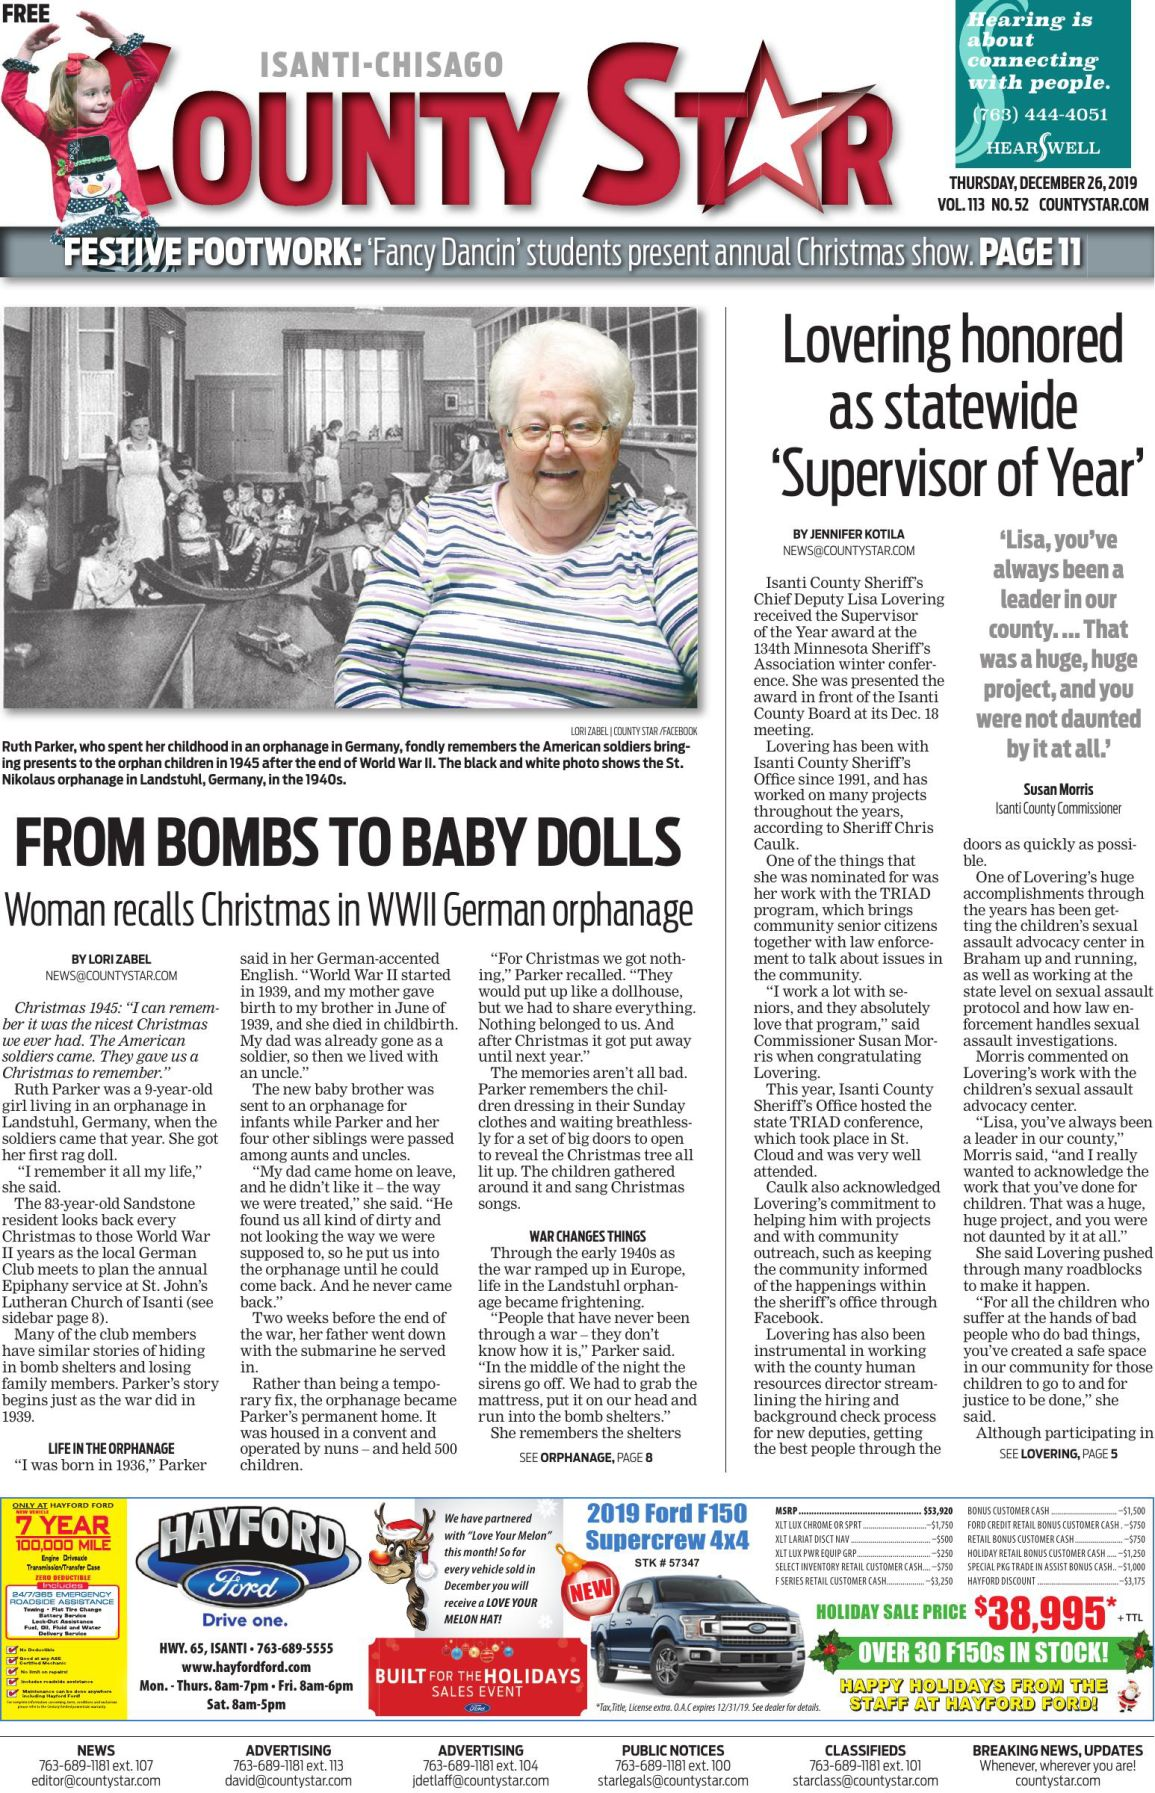 Isanti-Chisago County Star December 26, 2019 e-edition